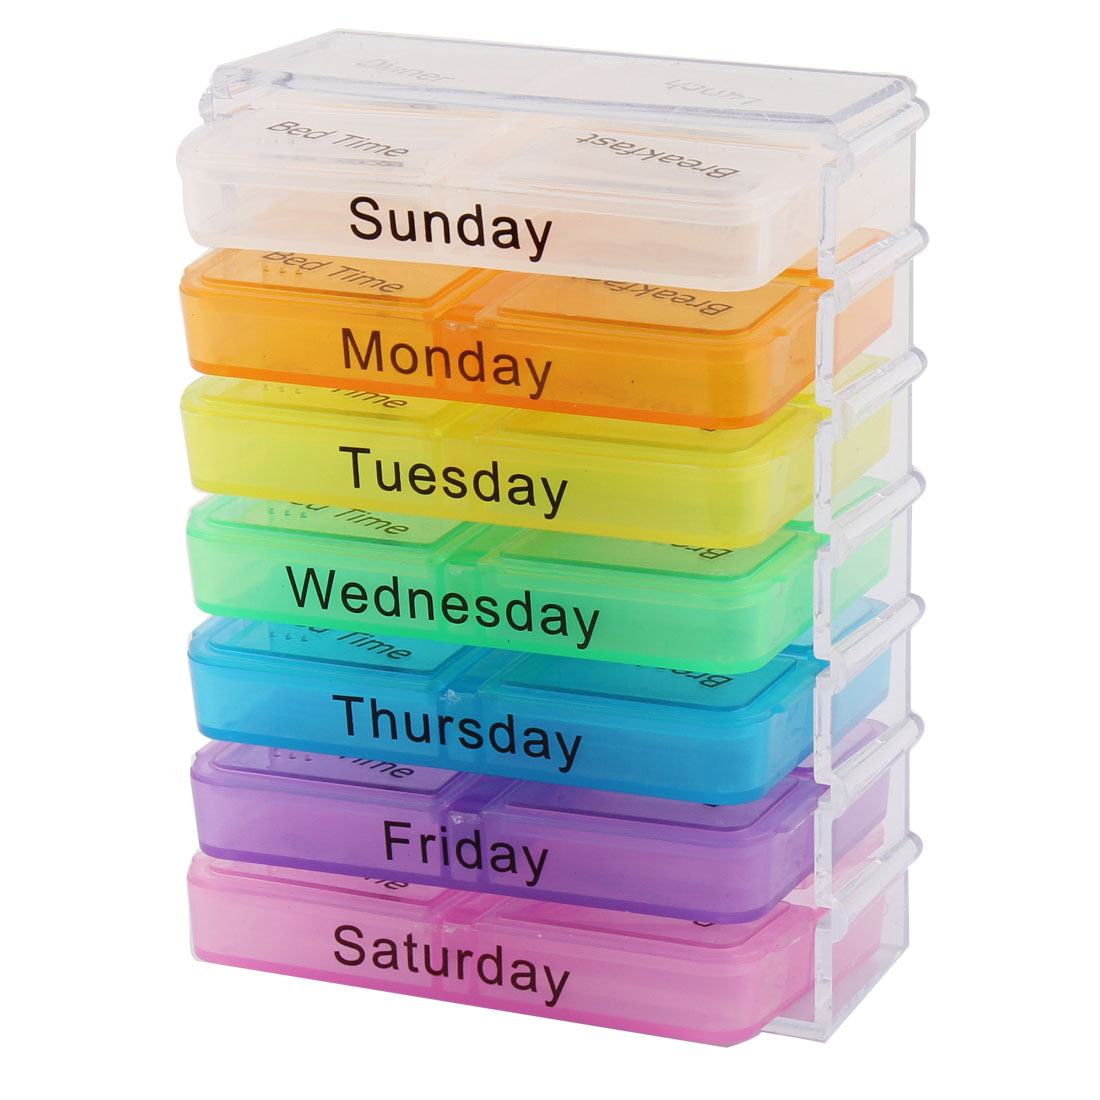 UXCELL Household Travel Detachable Medication Reminder Daily Am Pm Weekly Pill Box Case